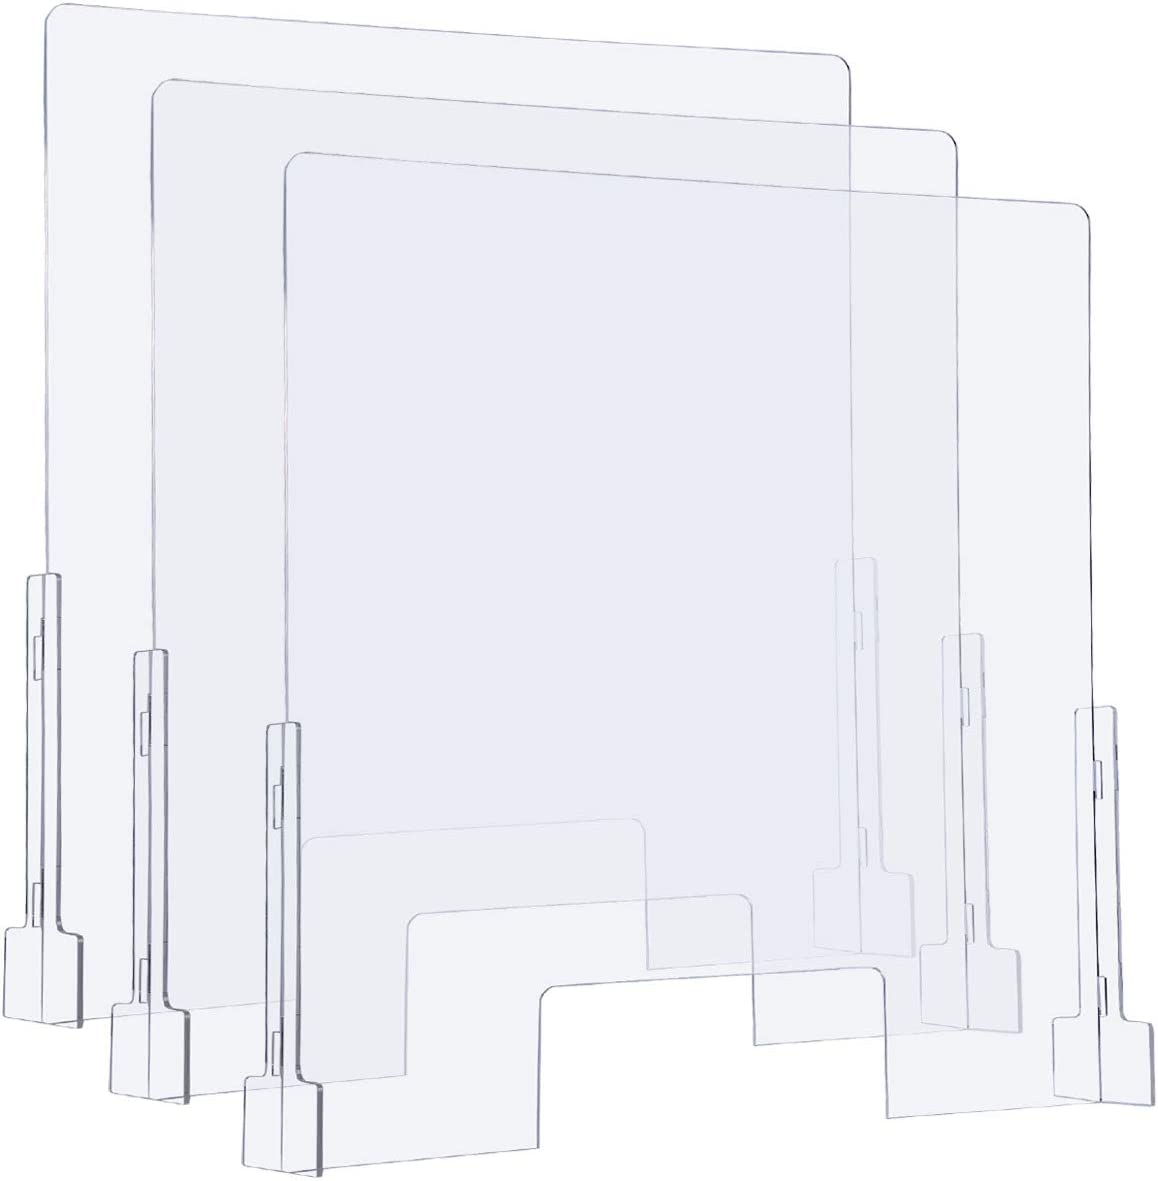 "(3 Packs) Sumerflos Clear Acrylic Sneeze Guard, 31"" x 31"" Protective Plexiglass Shield Barrier for Counter, Cashier, Workers, Reception Desk, Offices, Banks"